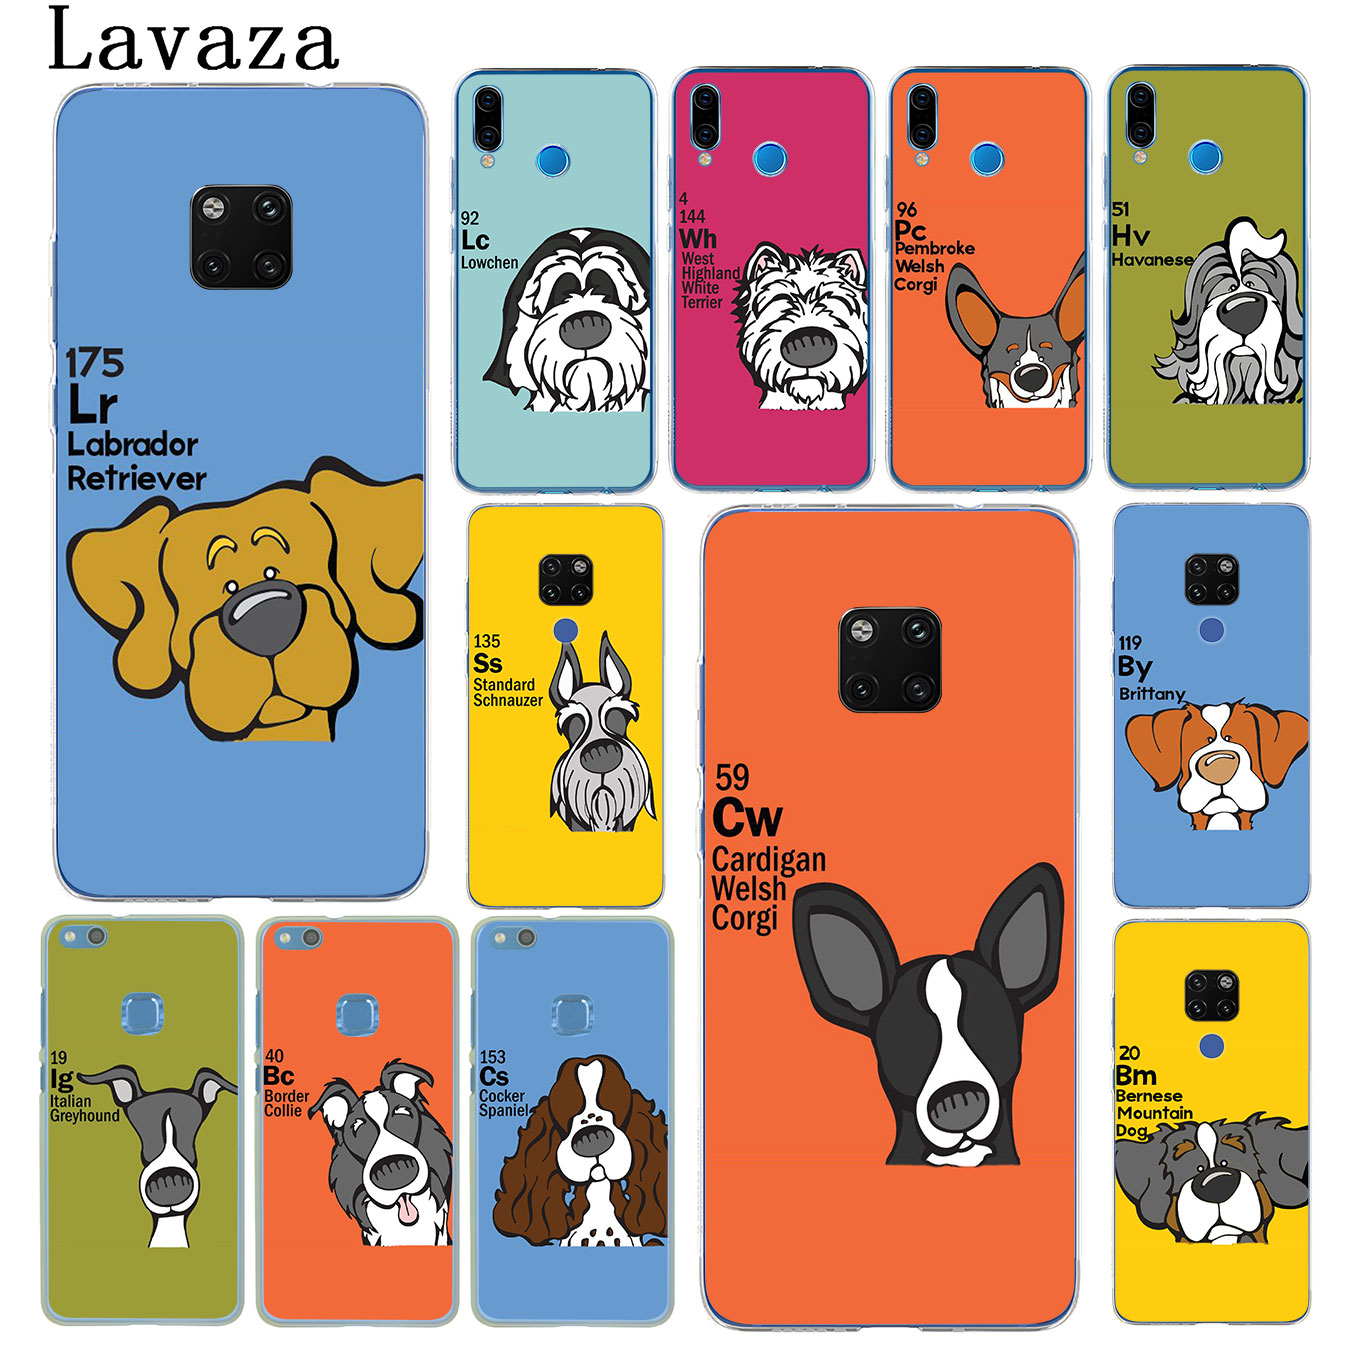 Lavaza Periodic table of ele ments dog Phone Case for Huawei Nova 4 3i 3 2i Lite 2017 Cover for Huawei Mate 20 10 P20 Pro Lite